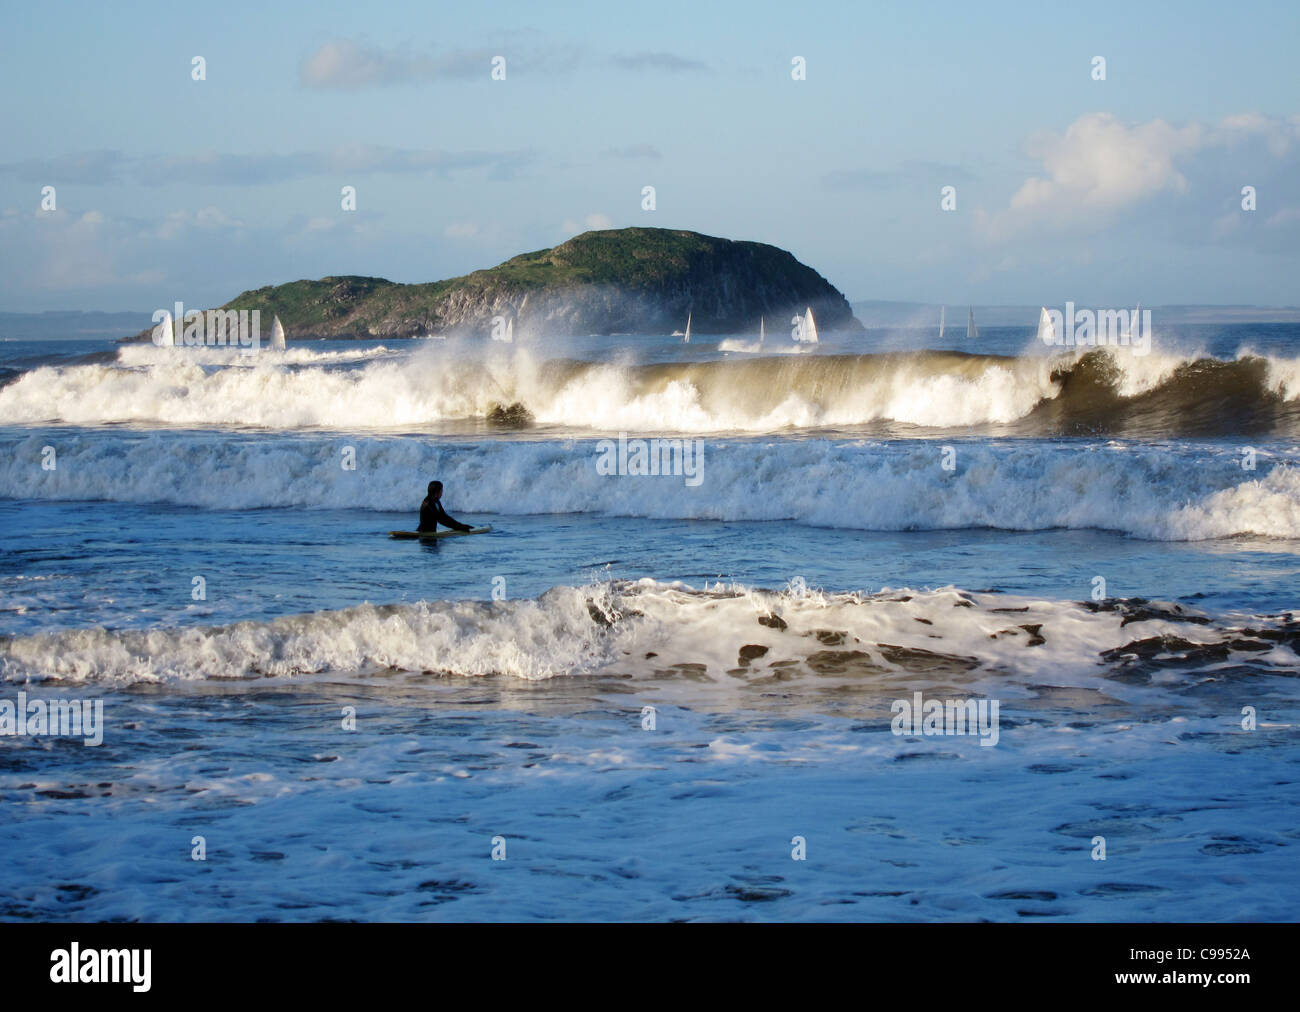 Crashing waves on the coast at North Berwick, Scotland in November. Craigleith Island is in the background. - Stock Image